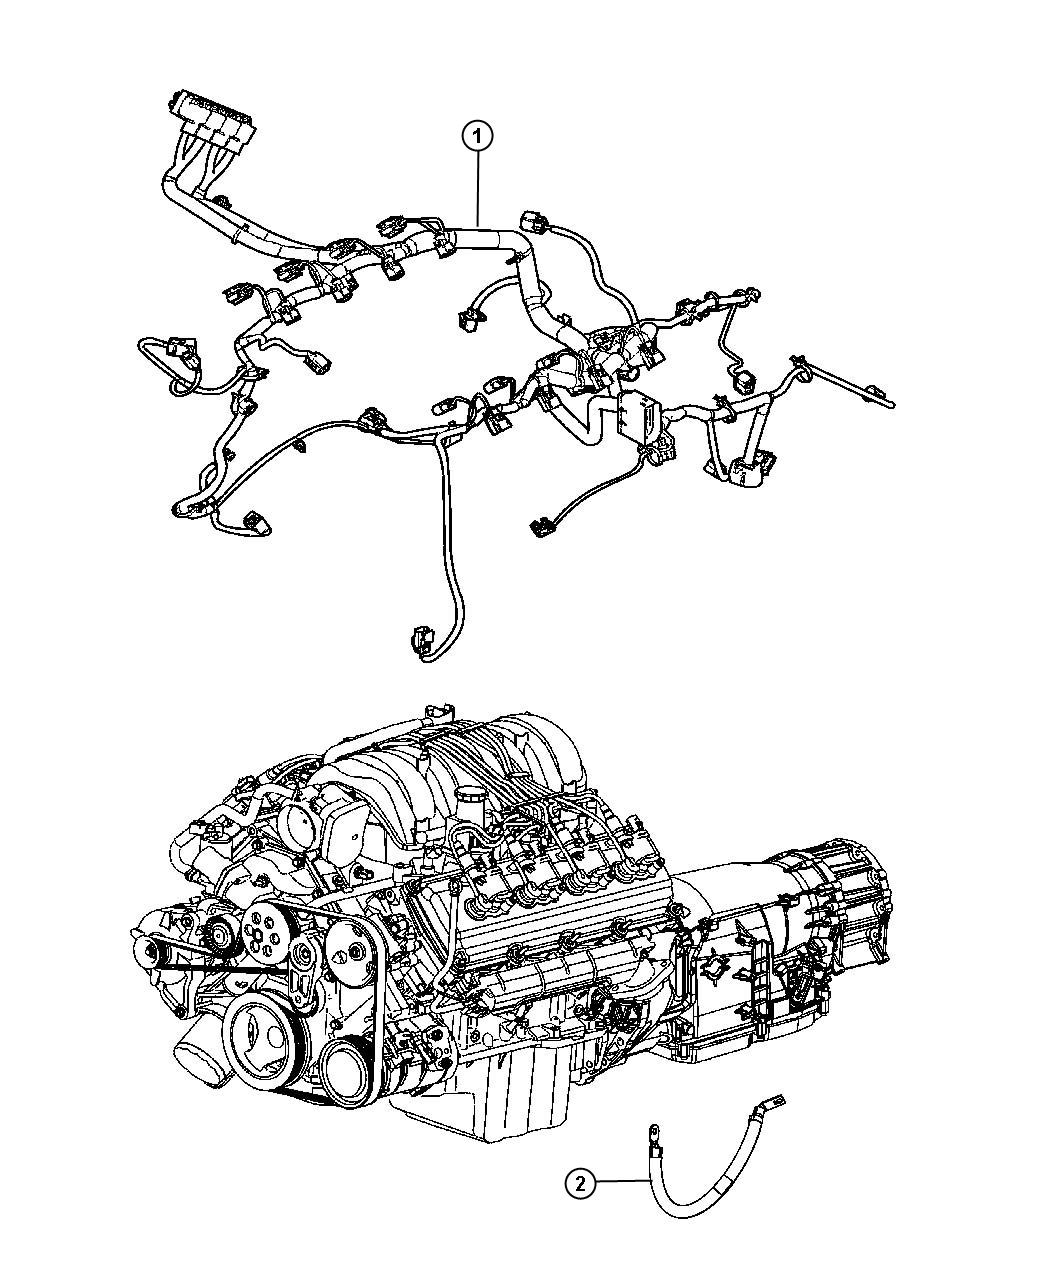 Jeep Grand Cherokee Wiring. Ground jumper. After 4/12/10